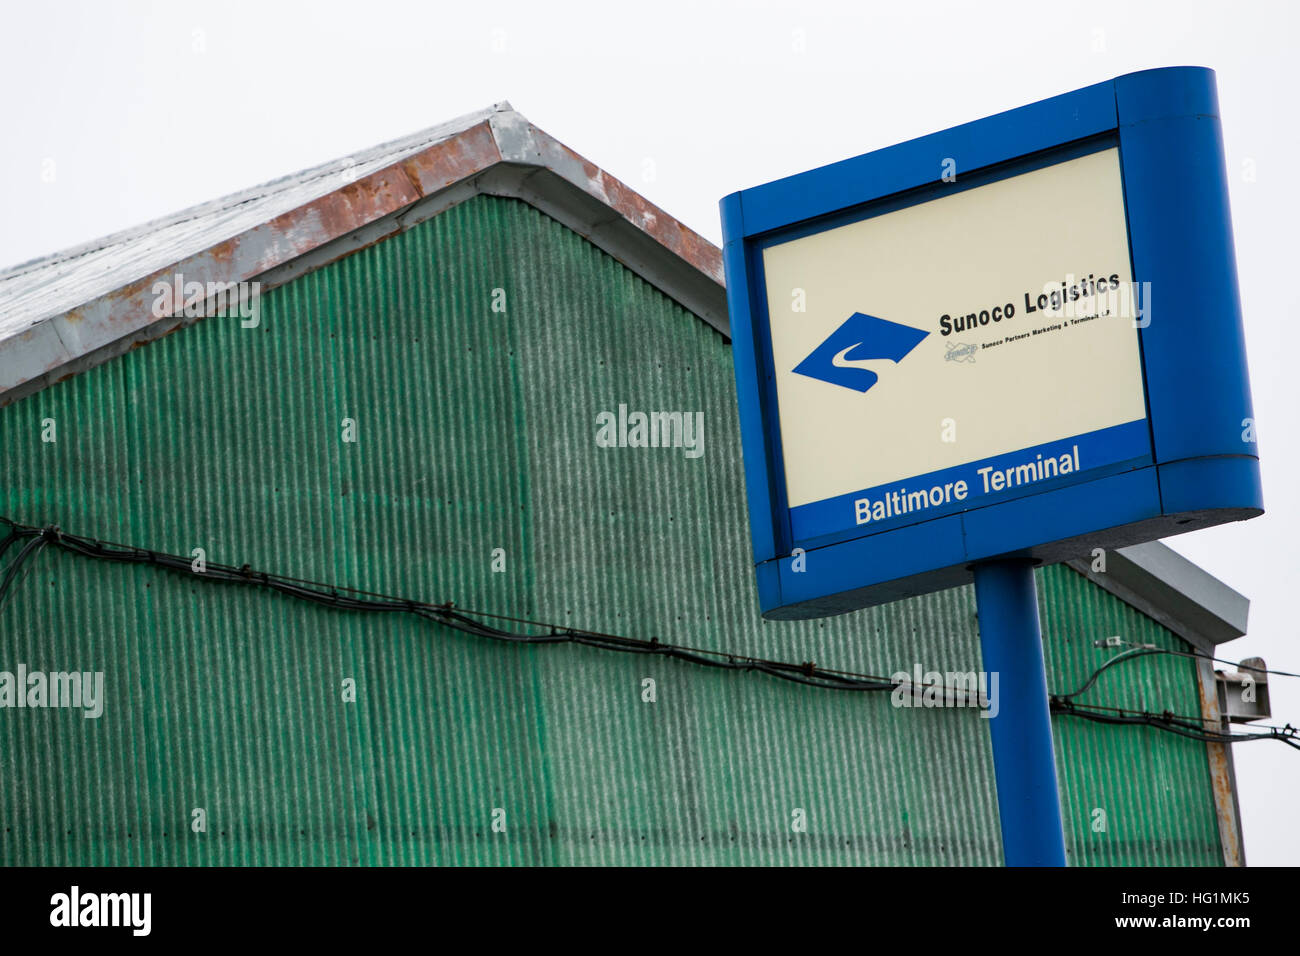 A logo sign outside of the Sunoco Logistics Partners LP Baltimore Terminal in Baltimore, Maryland on December 11, - Stock Image